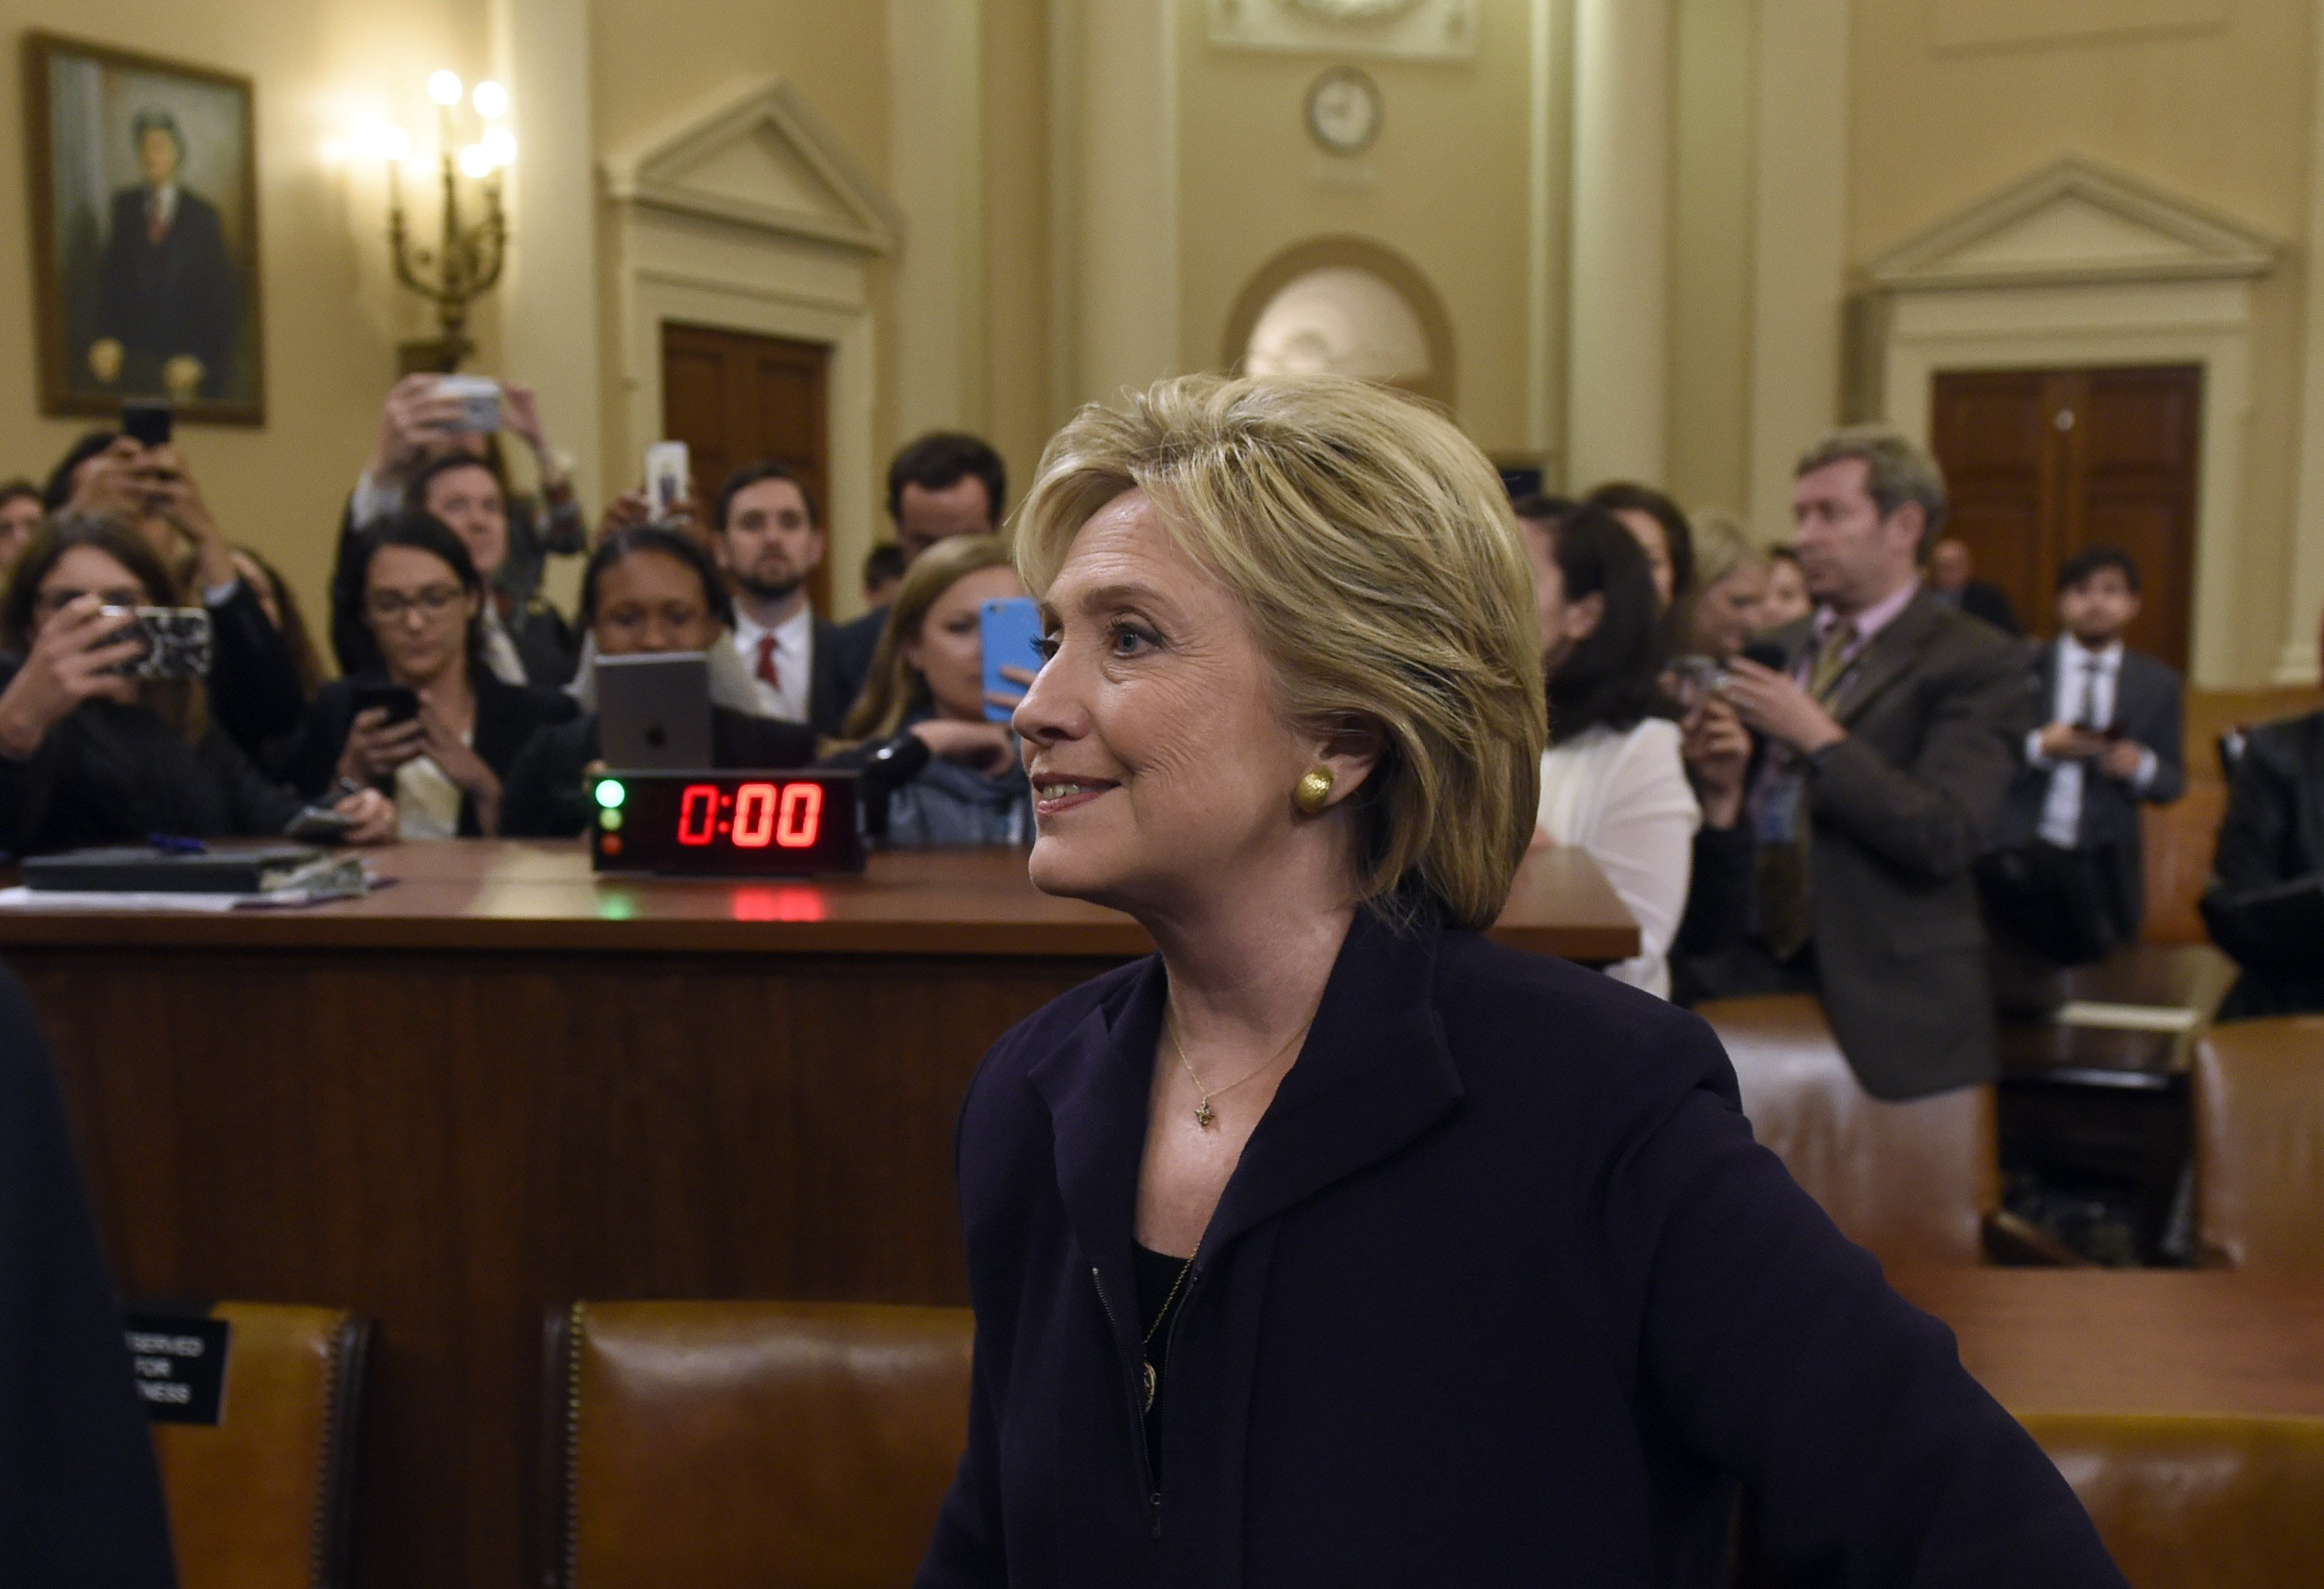 Former Secretary of State and Democratic Presidential hopeful Hillary Clinton leaves after she testified before the House Select Committee on Benghazi on Capitol Hill in Washington, DC, October 22, 2015. (SAUL LOEB/AFP/Getty Images)